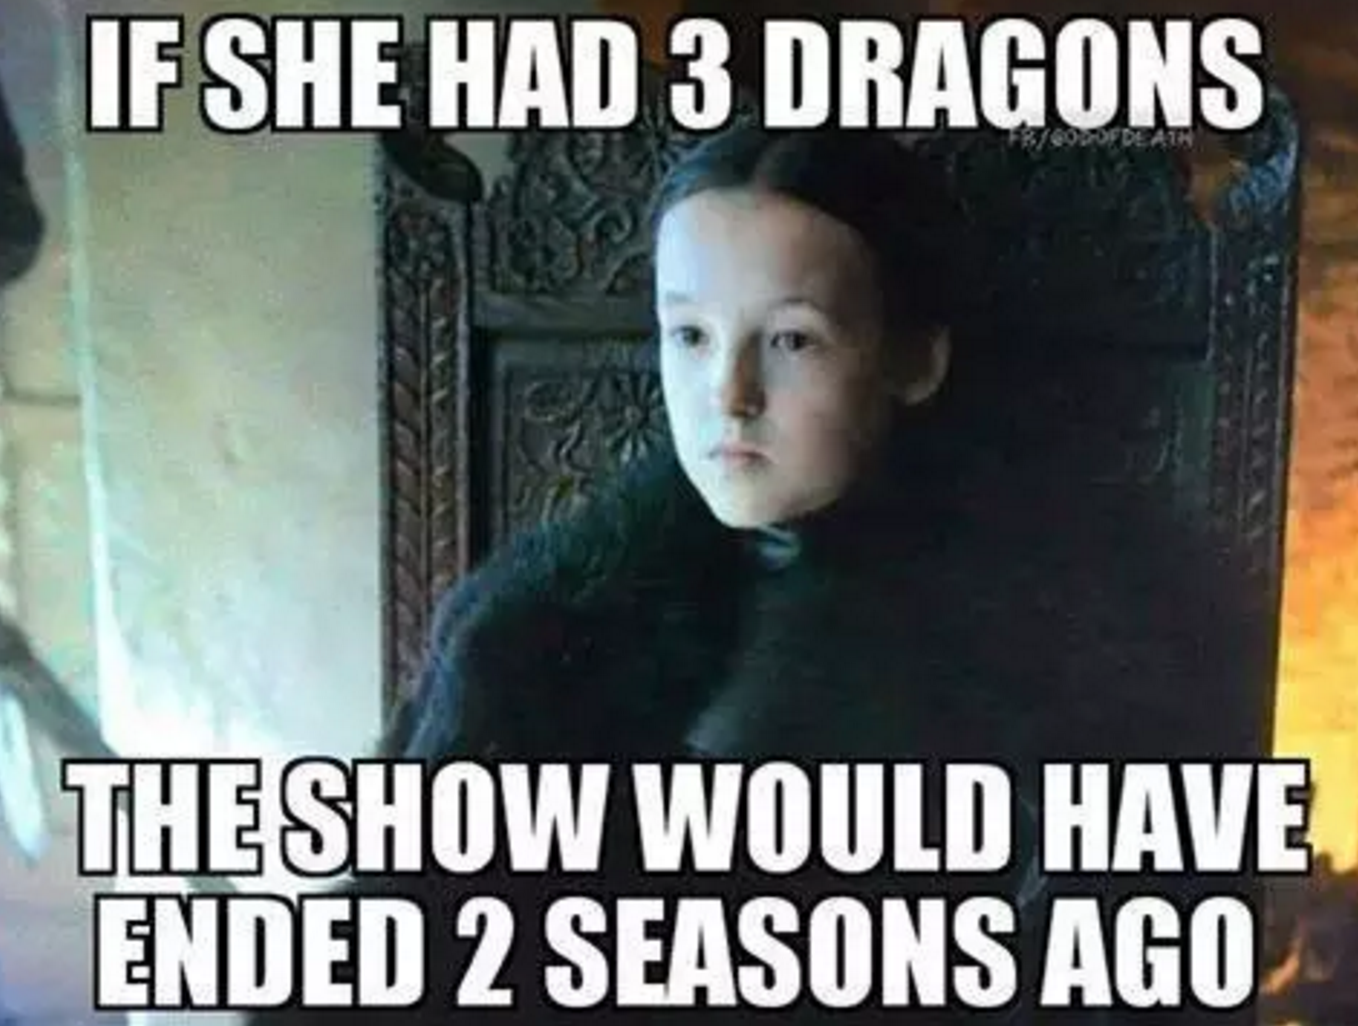 Funny Meme Game Of Thrones : Game of thrones memes made of hot dragon s fire photos thechive